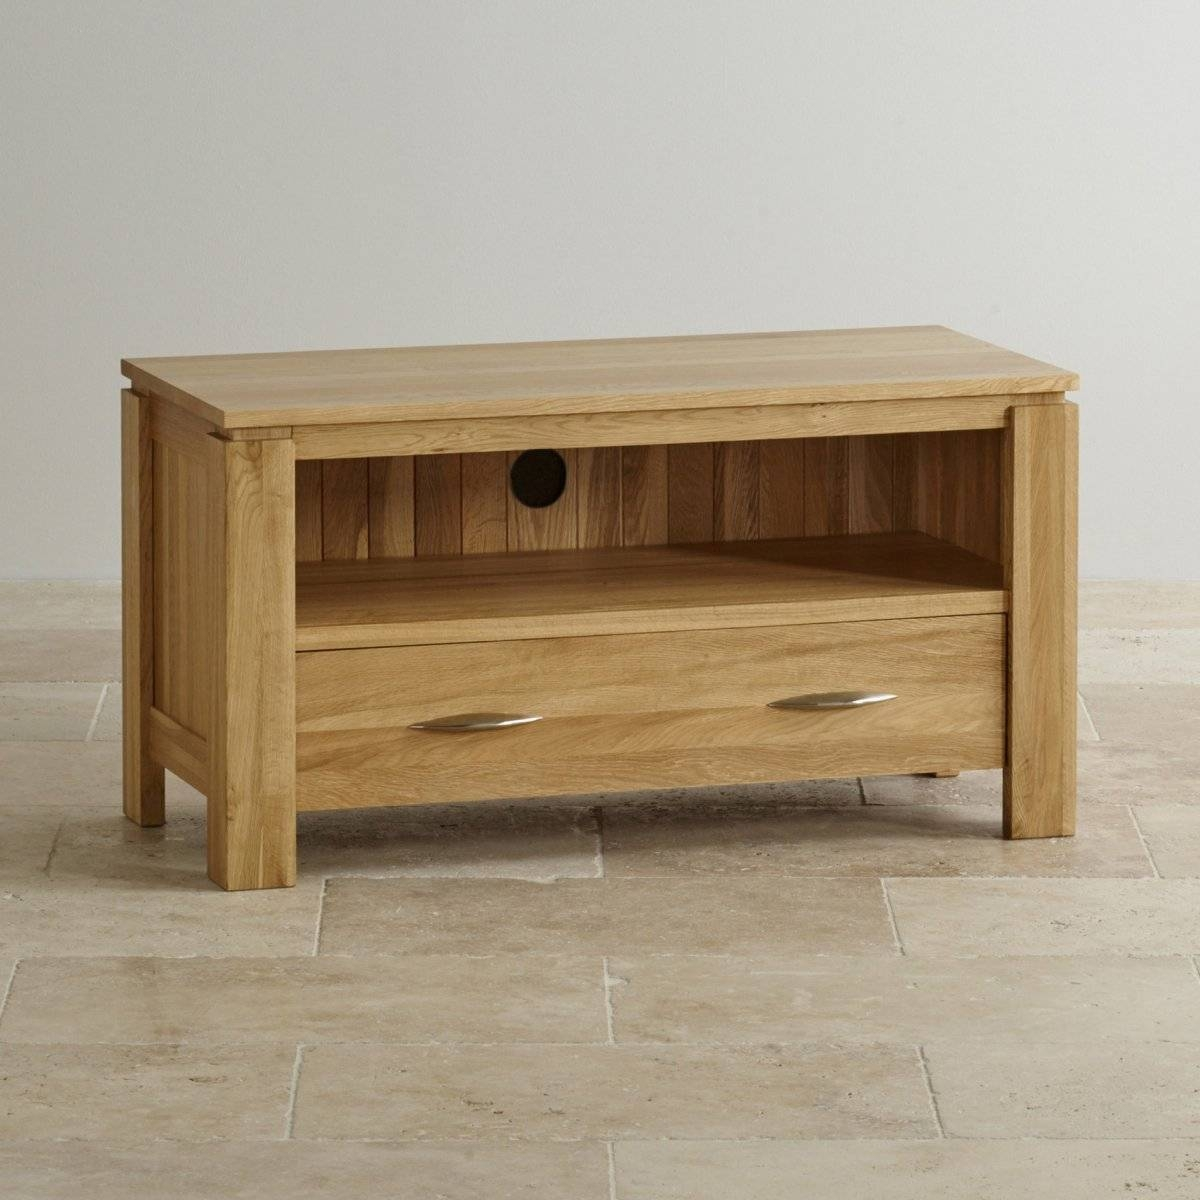 Galway Natural Solid Oak Tv + Dvd Stand | Living Room Furniture Inside Small Oak Tv Cabinets (View 6 of 15)